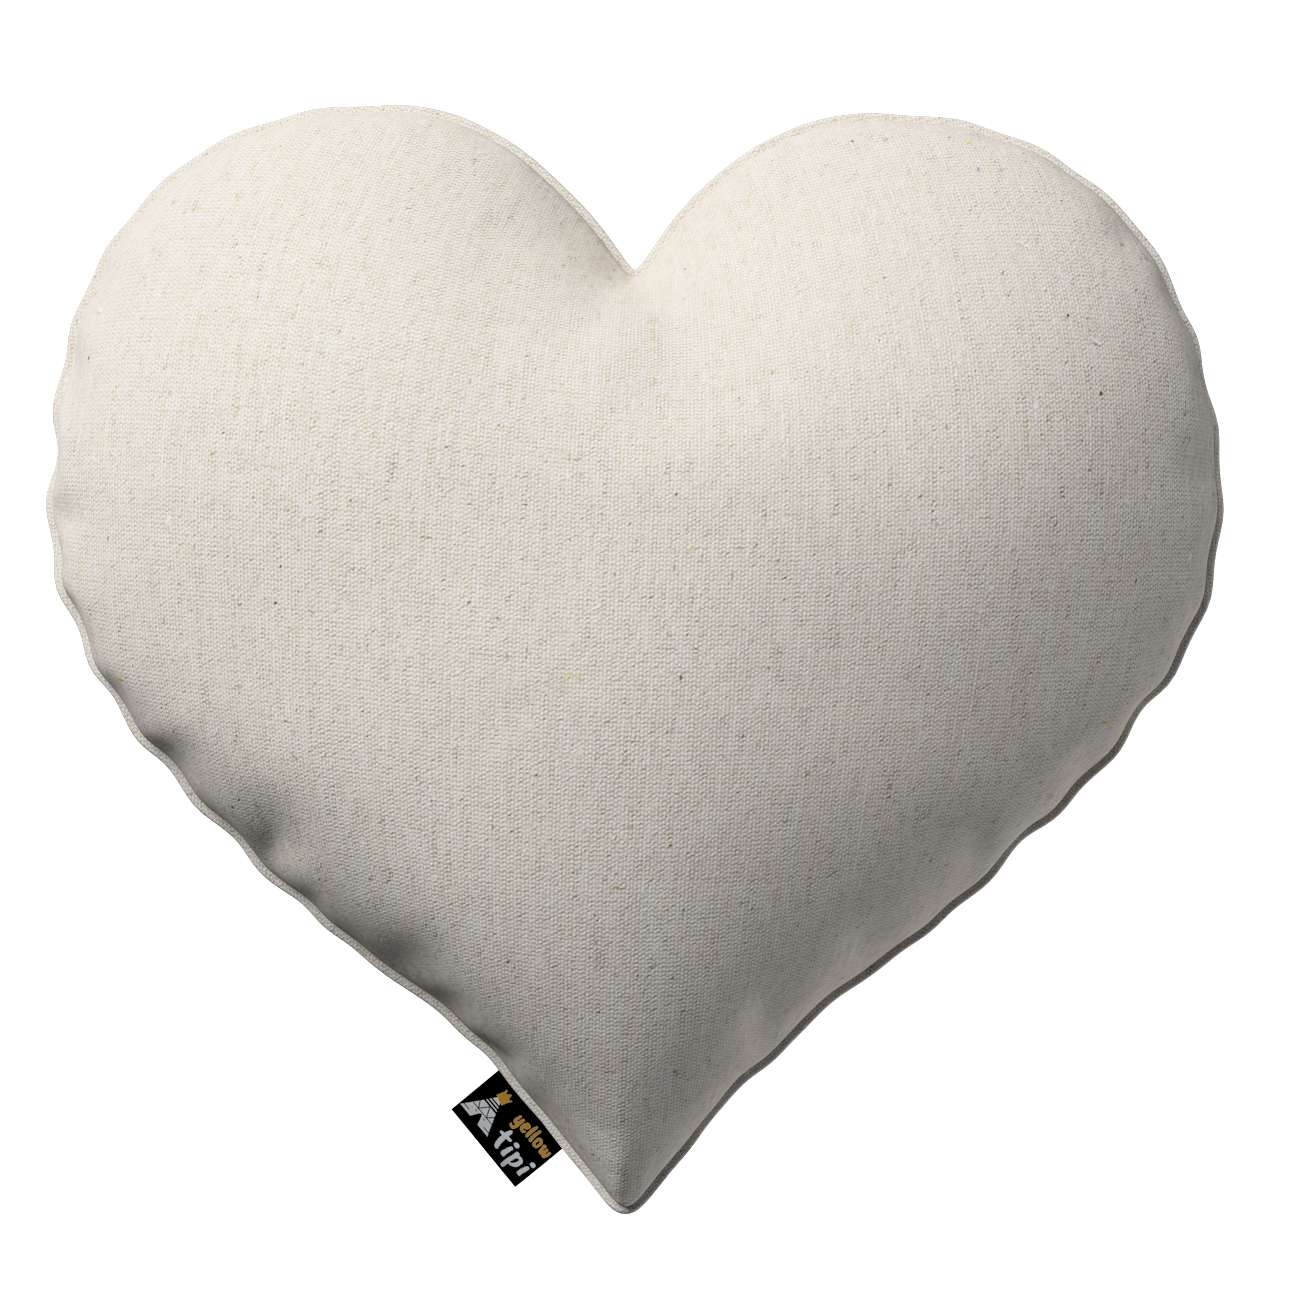 Heart of Love pillow in collection Happiness, fabric: 133-65